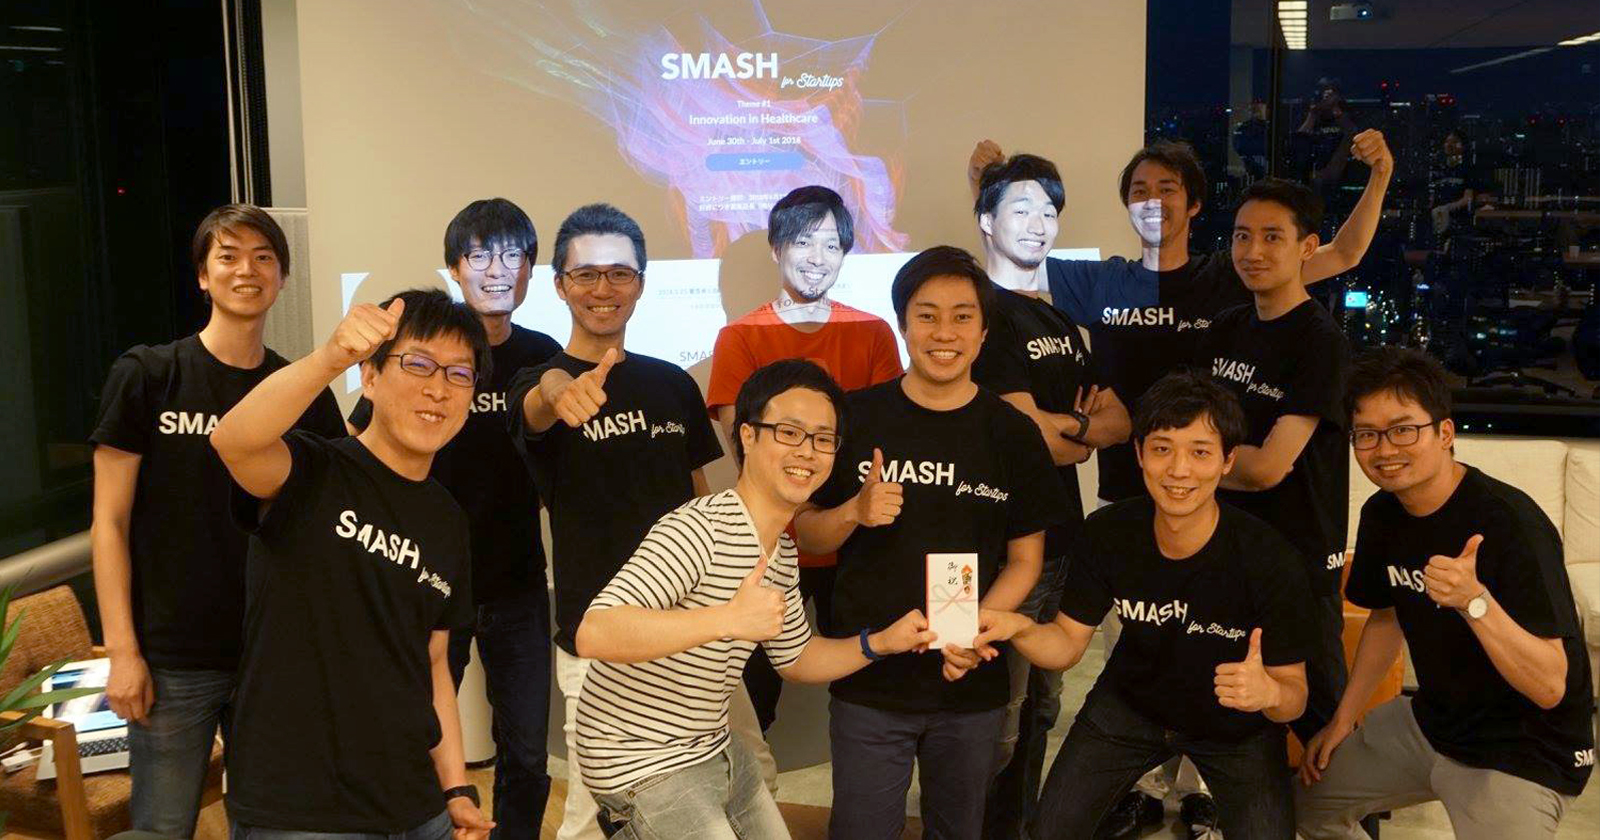 """""""SMASH for Startups""""イベント 『第1回 Innovation in Healthcare』を開催しました。"""